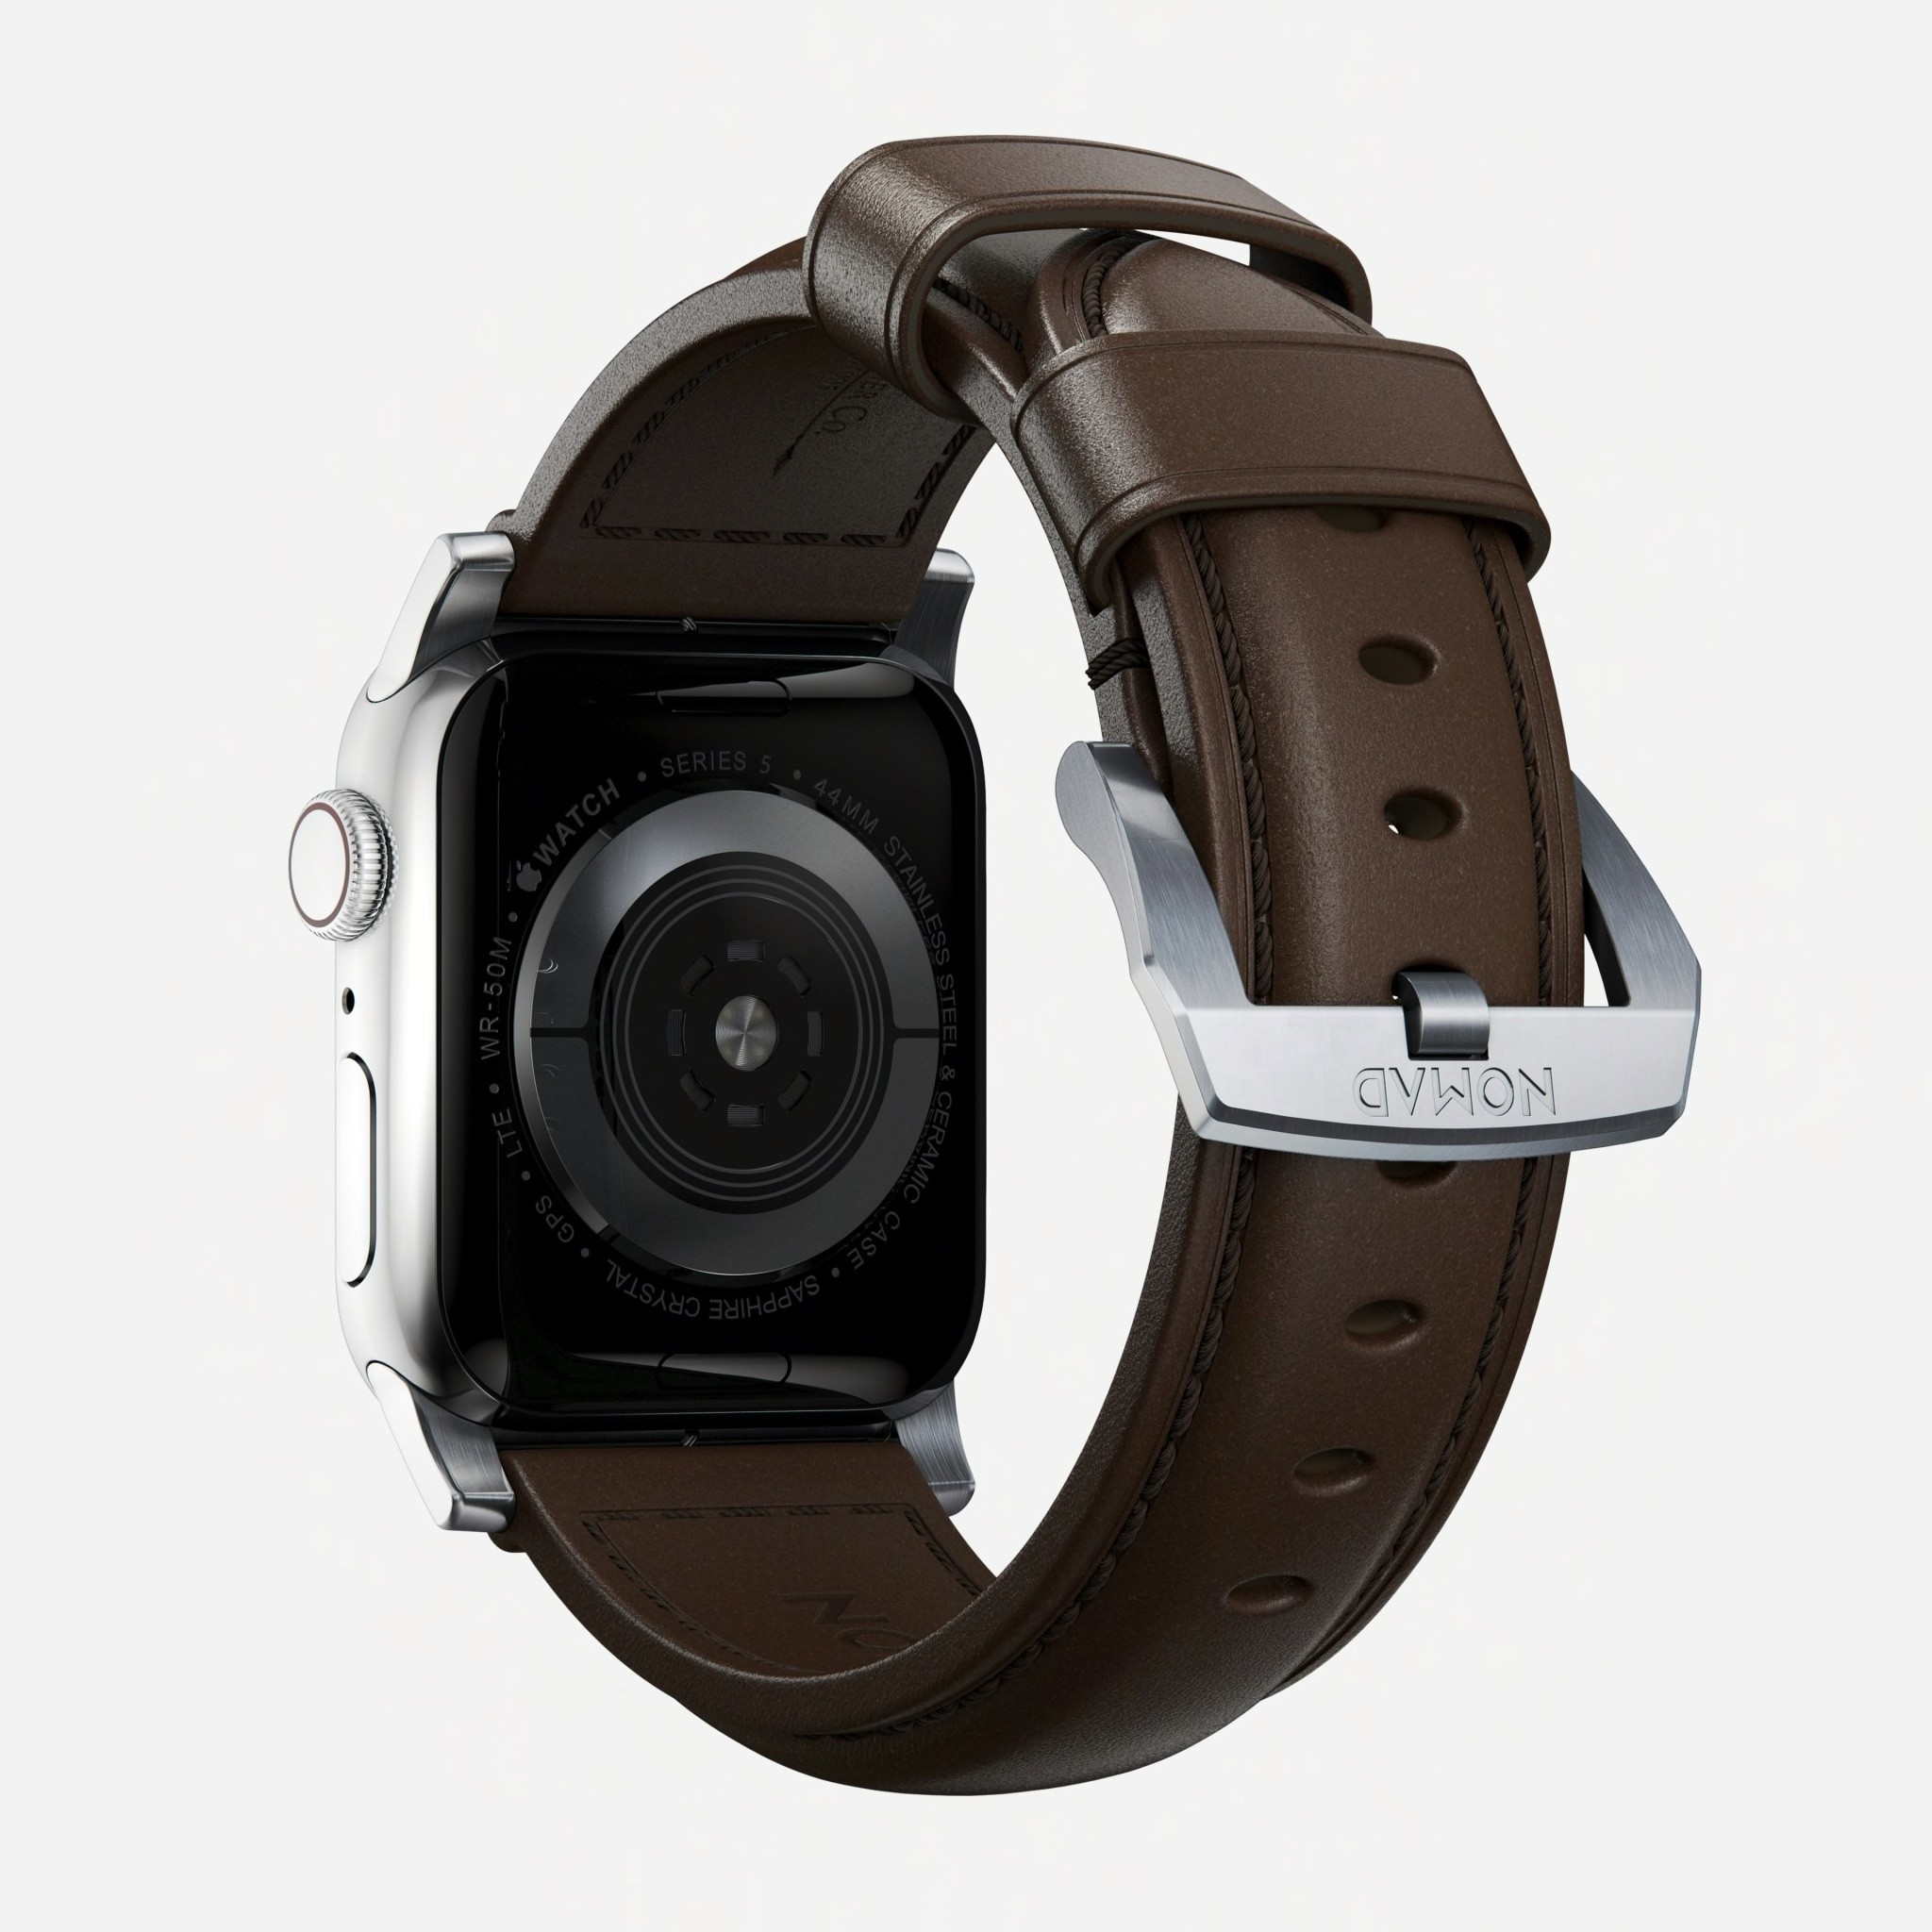 Nomad - Traditional Strap for Apple Watch 42/44mm - Rustic Brown Silver Hardware, NM1A4RST00